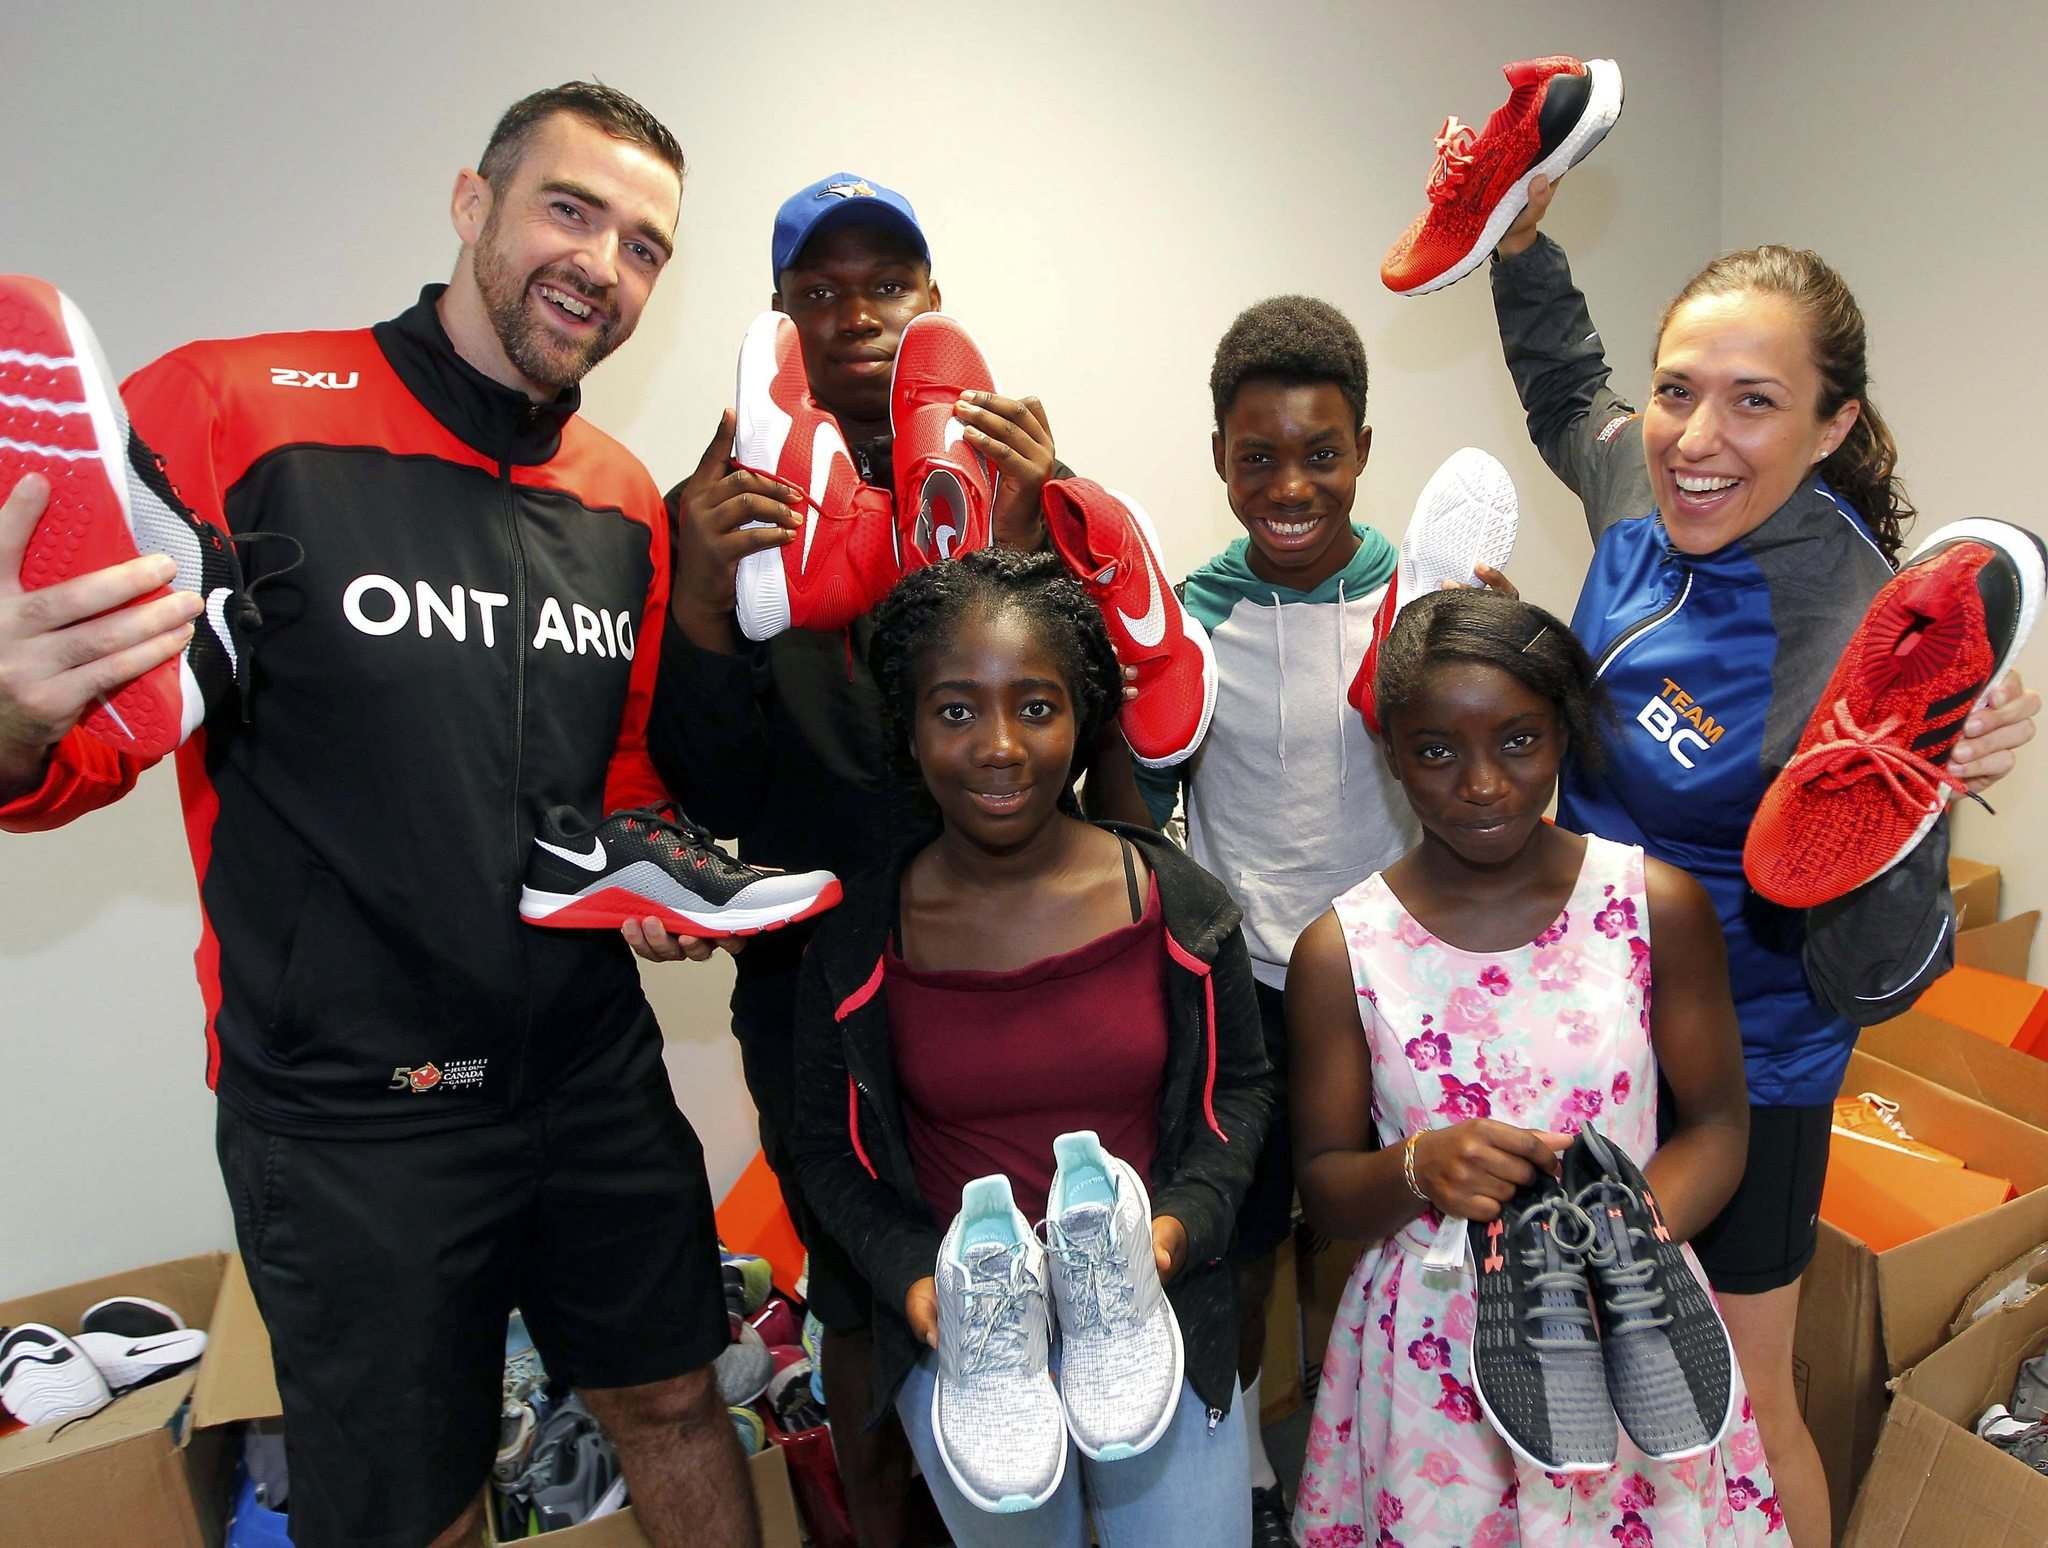 BORIS MINKEVICH / WINNIPEG FREE PRESS</p><p>Ontario's Nick Snow (left) and B.C.'s Michelle Collens (right) were on hand Thursday as their teams donated shoes to the Boys and Girls Club. Recipients include (back row from left) Emmanuel Olugbodi and Feranmi; (front row from left) Faith Odunayo, 14, and Dupe Abajesude, 11.</p></p>